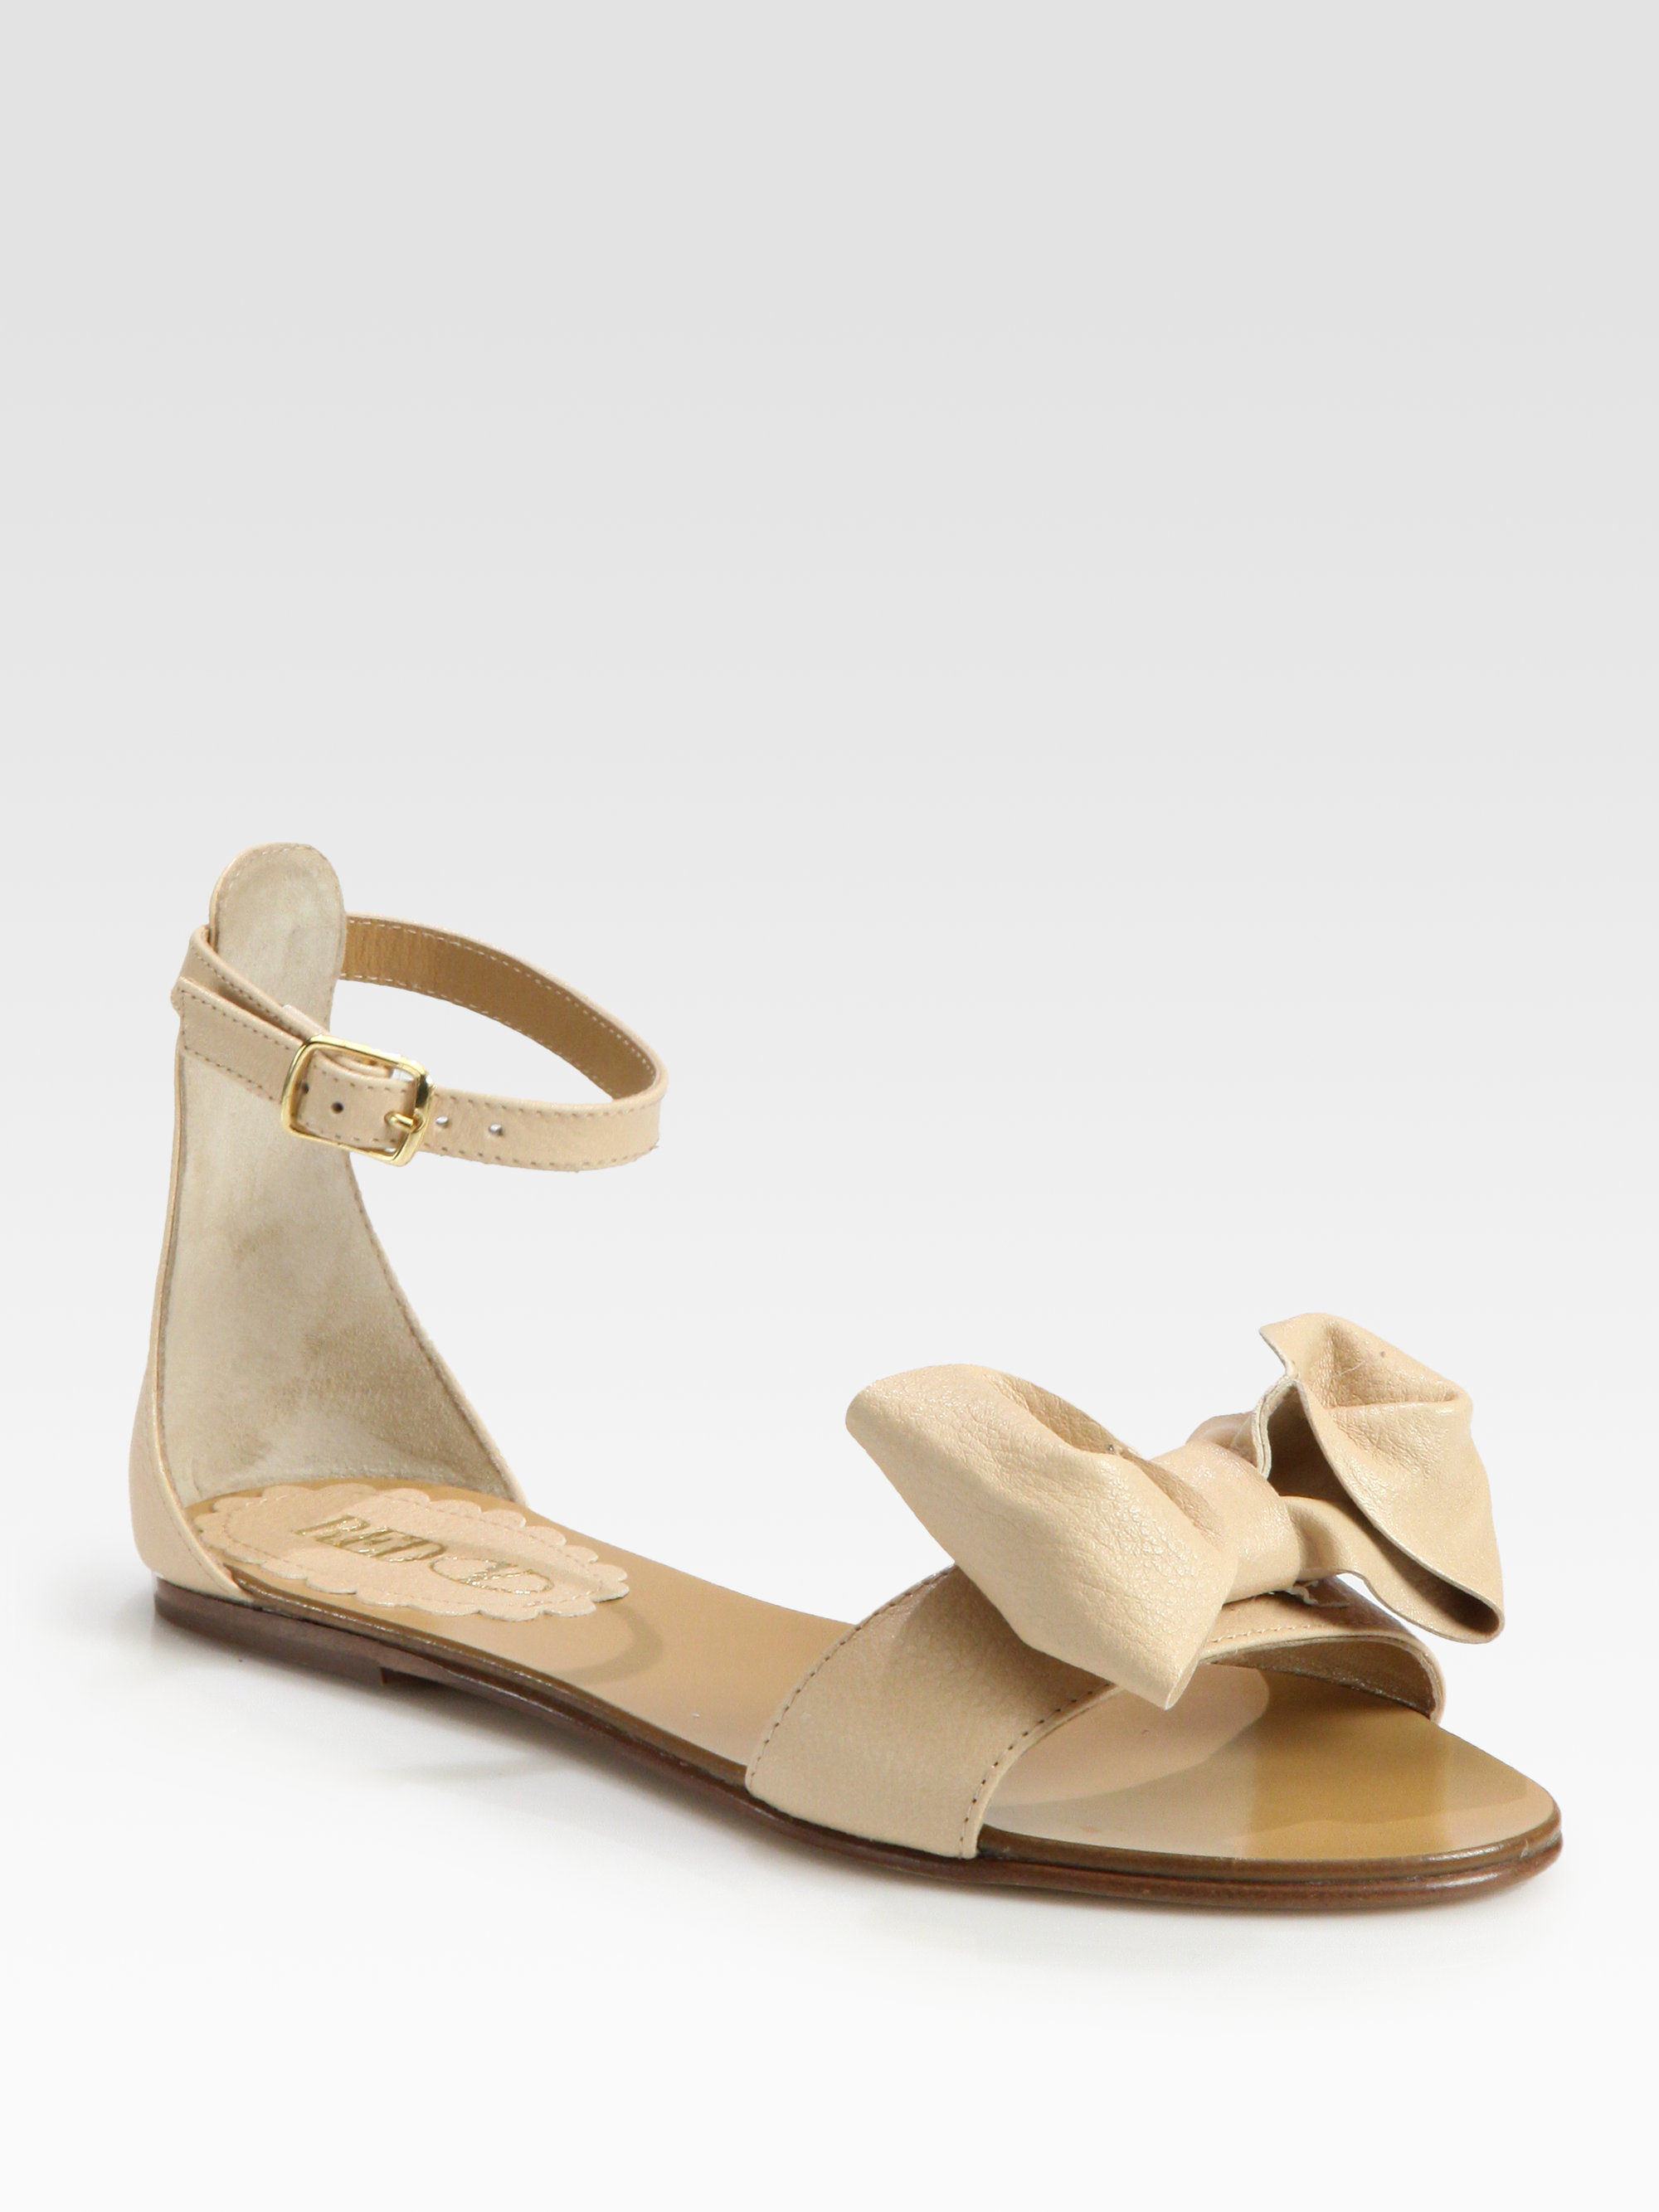 Red Valentino Leather Bow Flat Sandals In Beige Natural